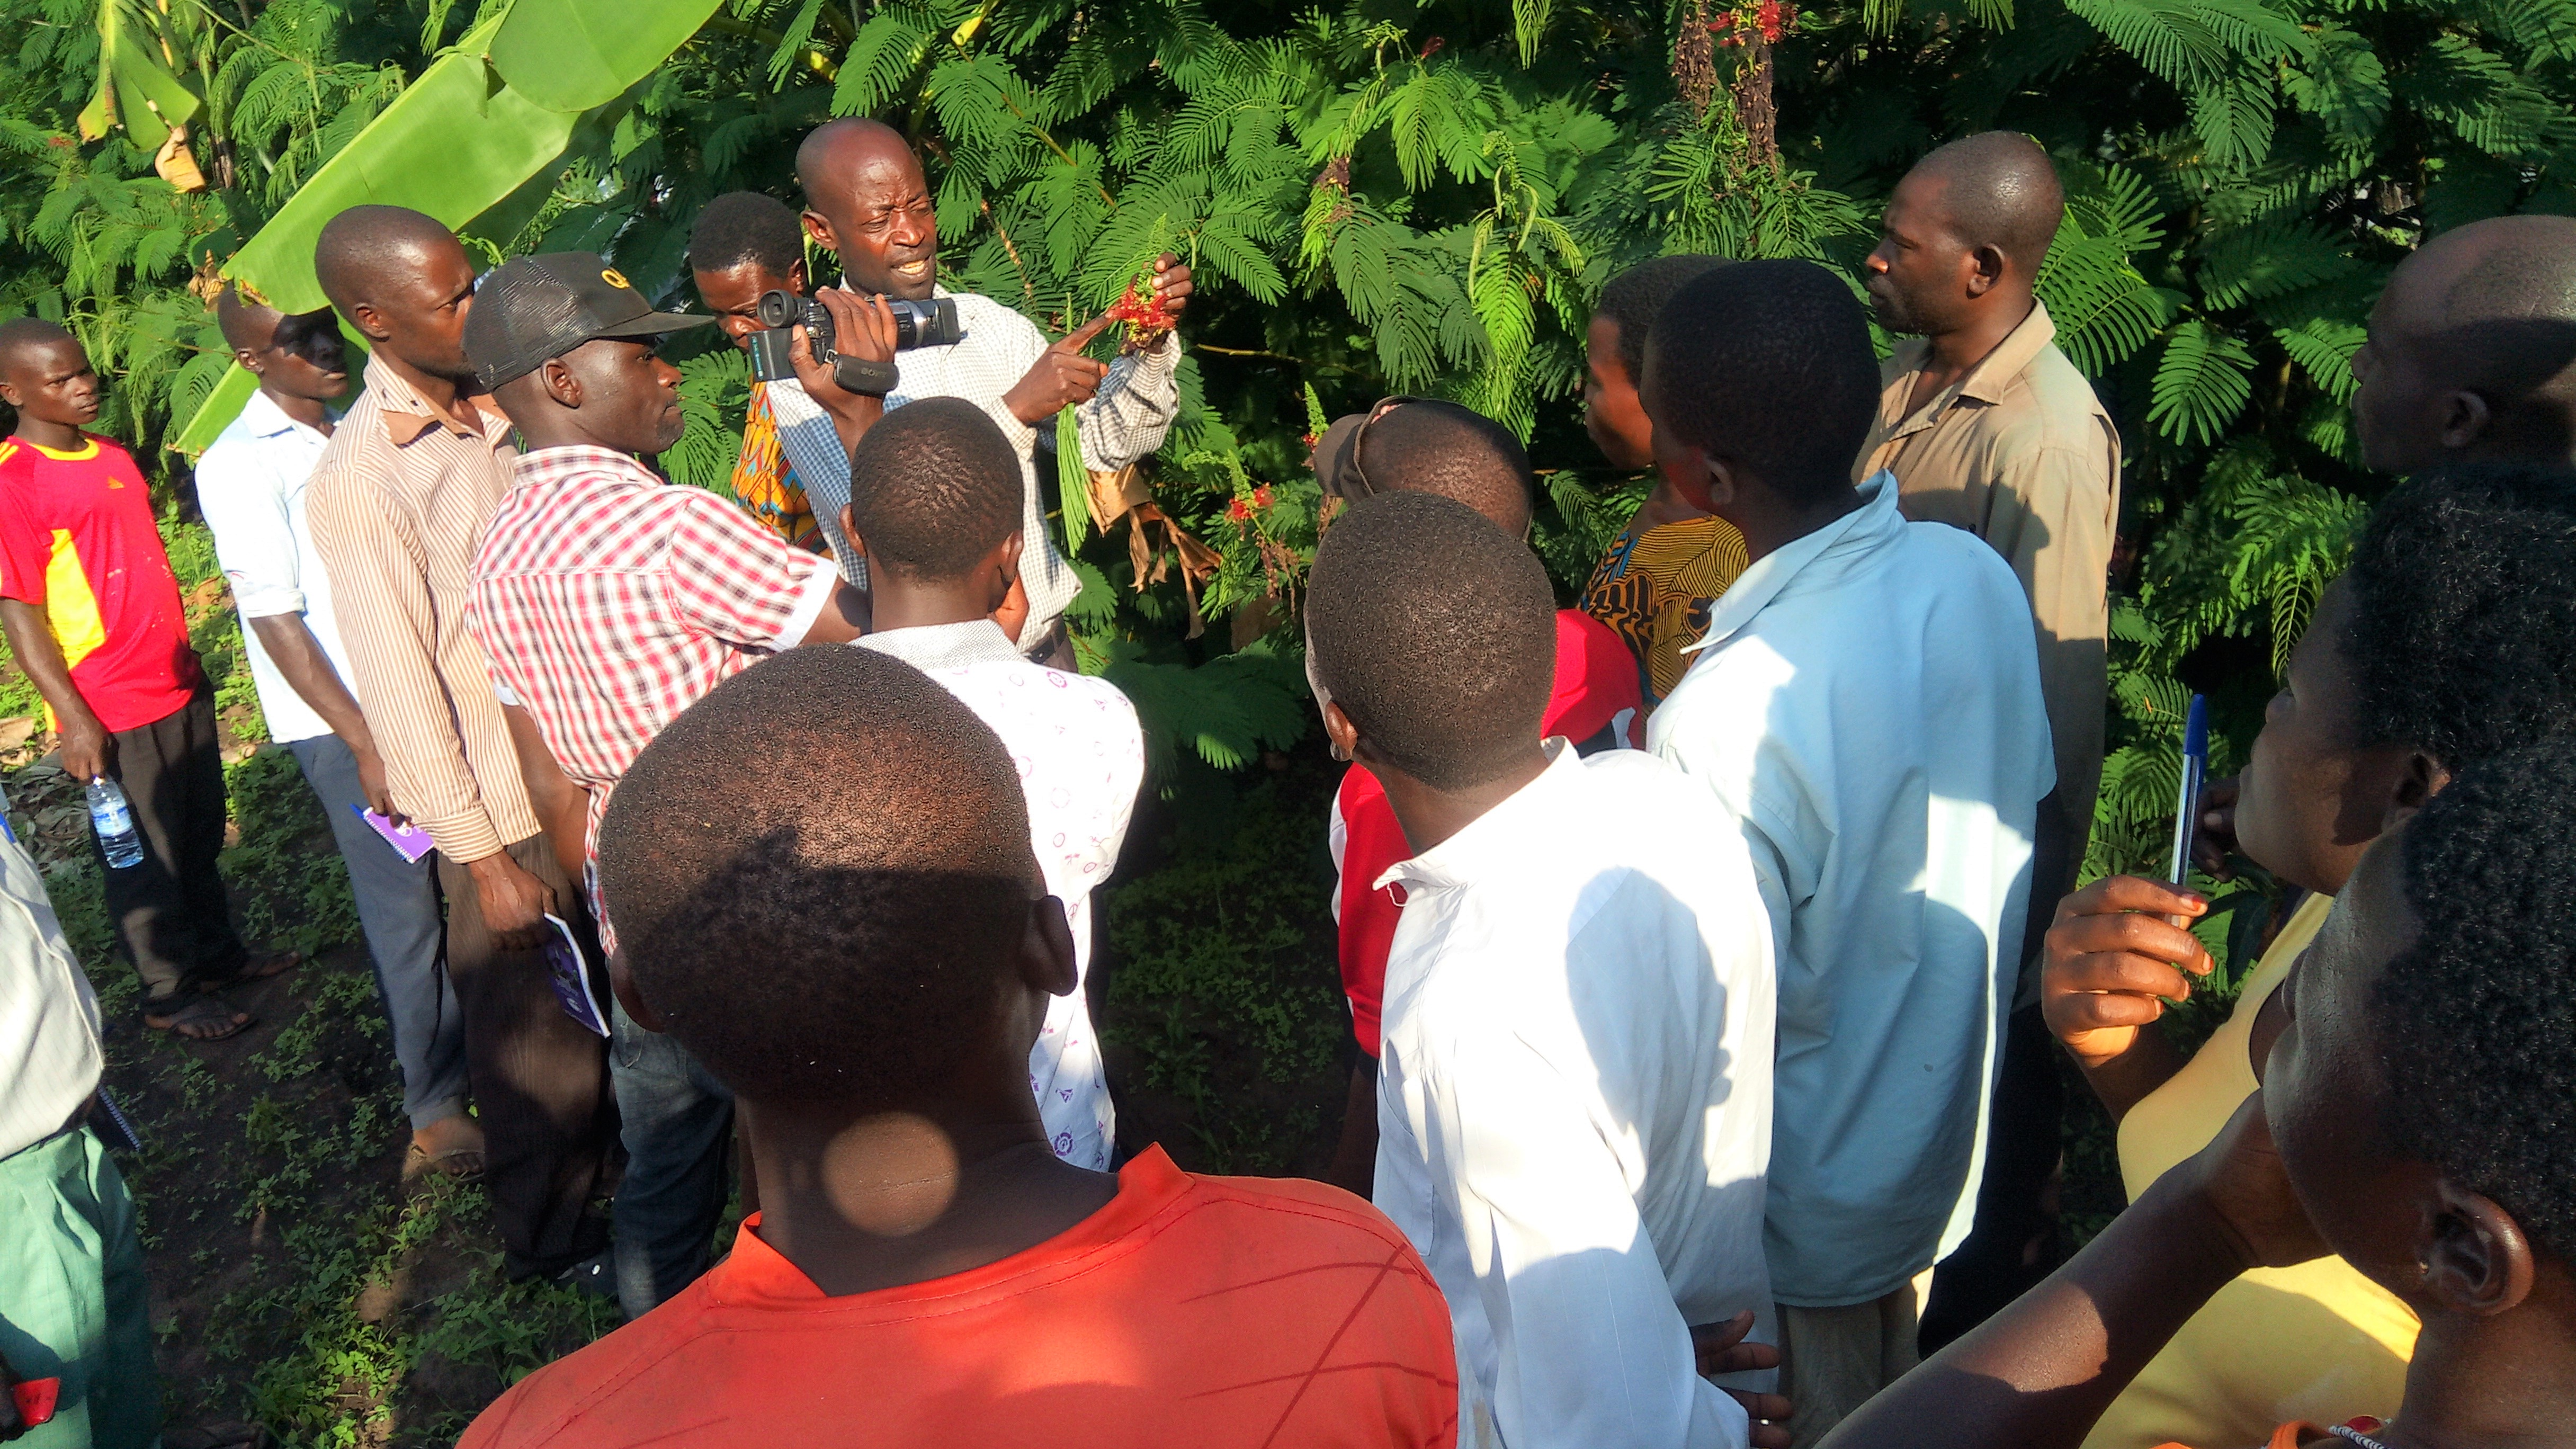 Richard Namunyu, a model farmer explaining about a multipurpose tree-Calliandra calothyrsus to women and youth. Photo: National Forestry Resources Research Institute/ Charles Galabuzi